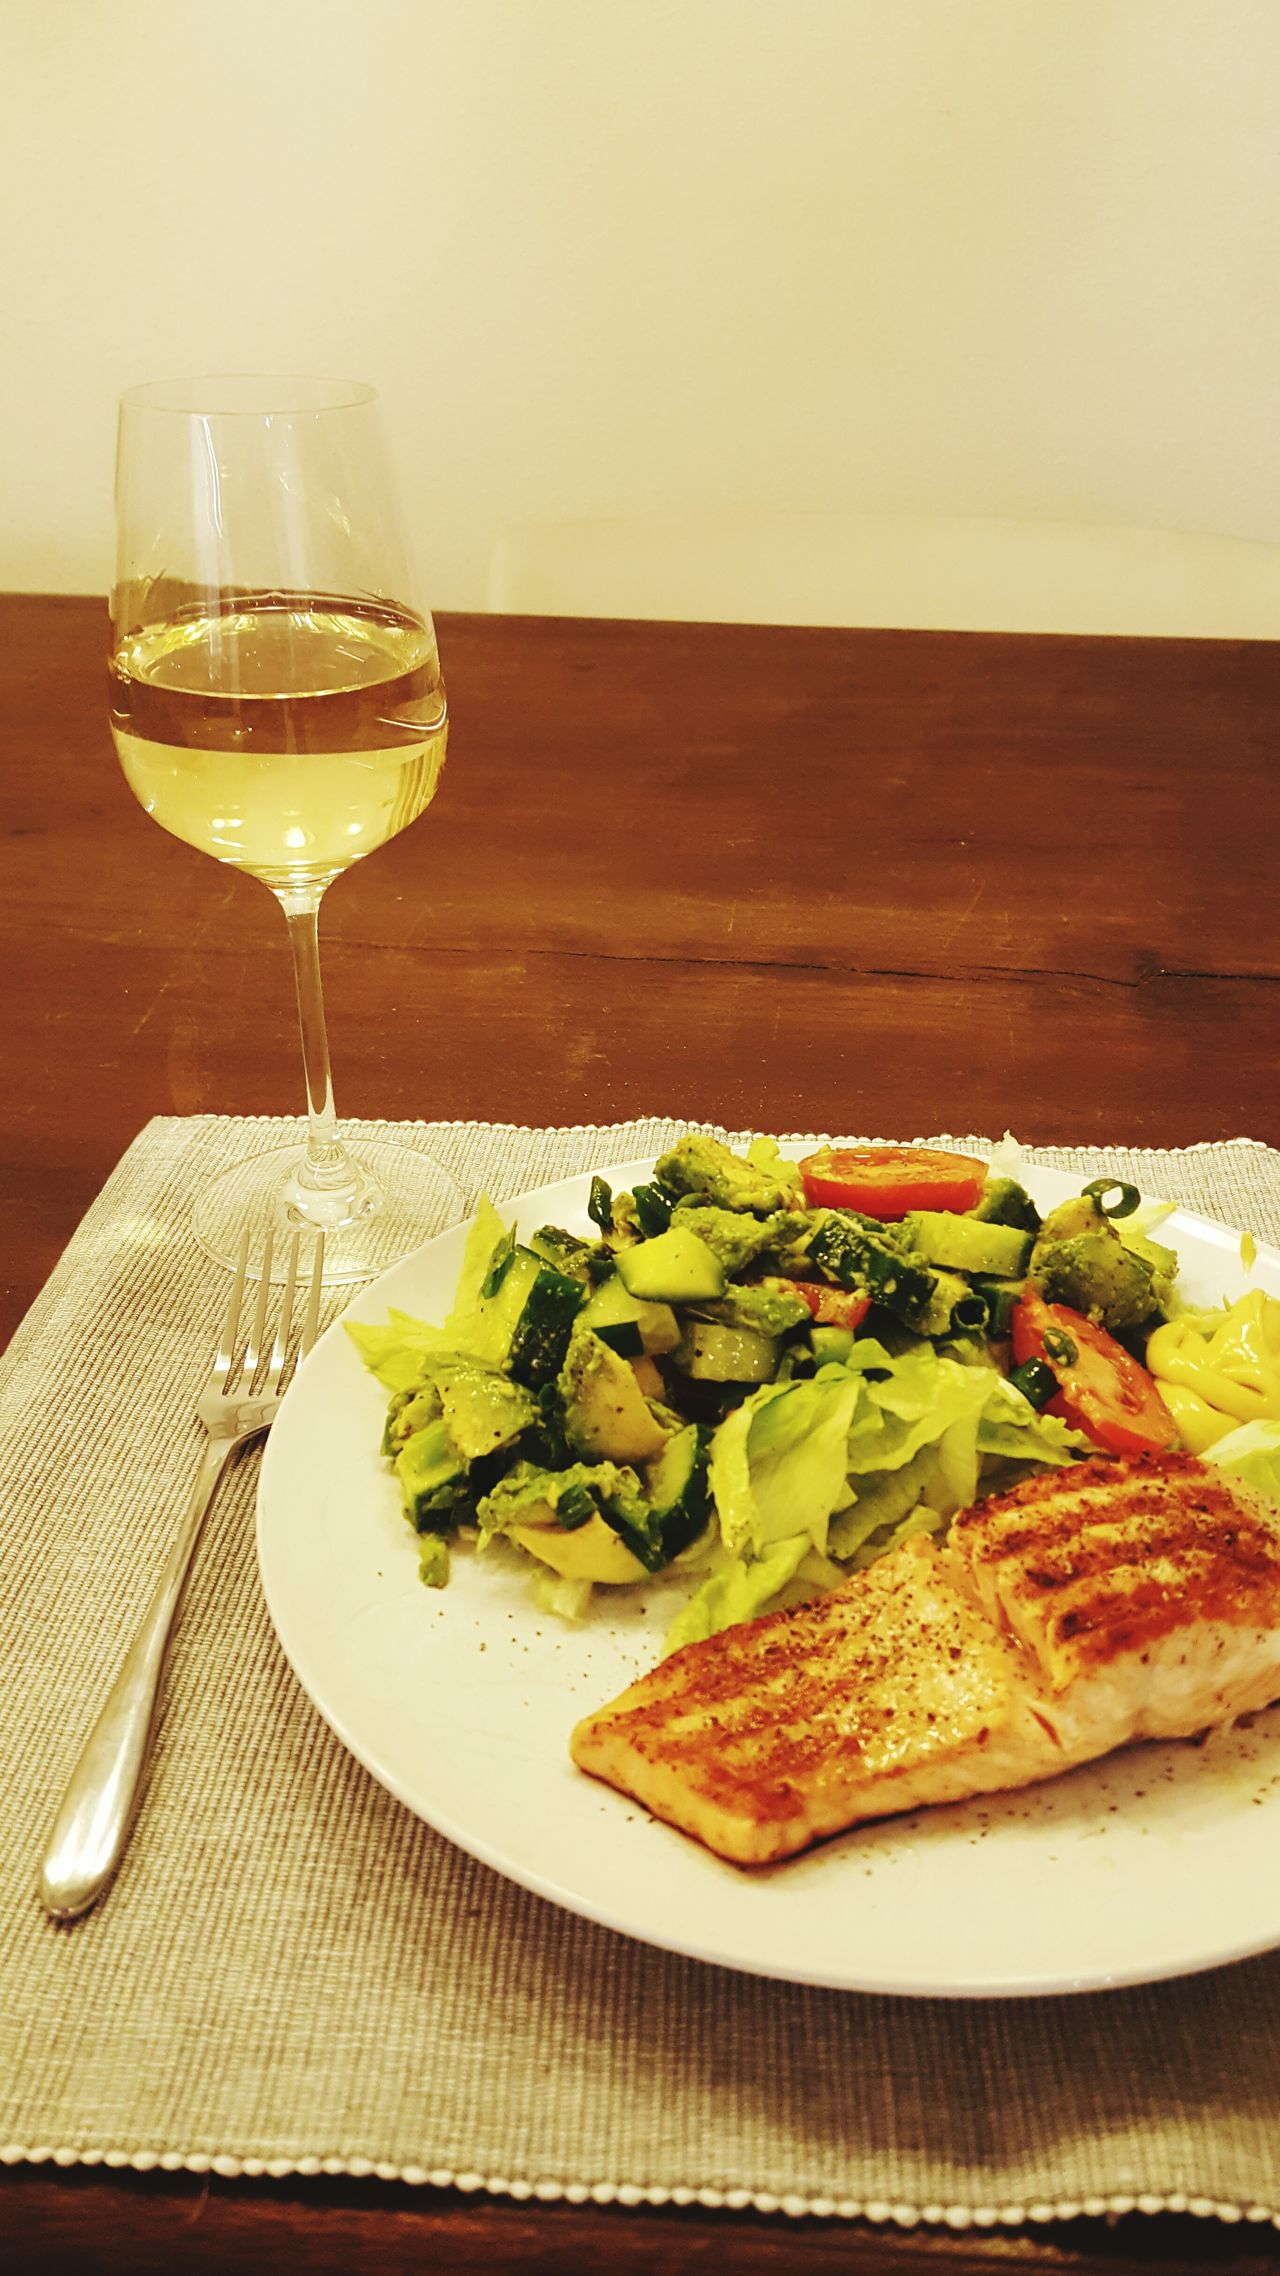 Wineglass Wine Food And Drink Drinking Glass Food Indoors  Table Alcohol No People Plate Healthy Eating Ready-to-eat Salmon Dish Salade